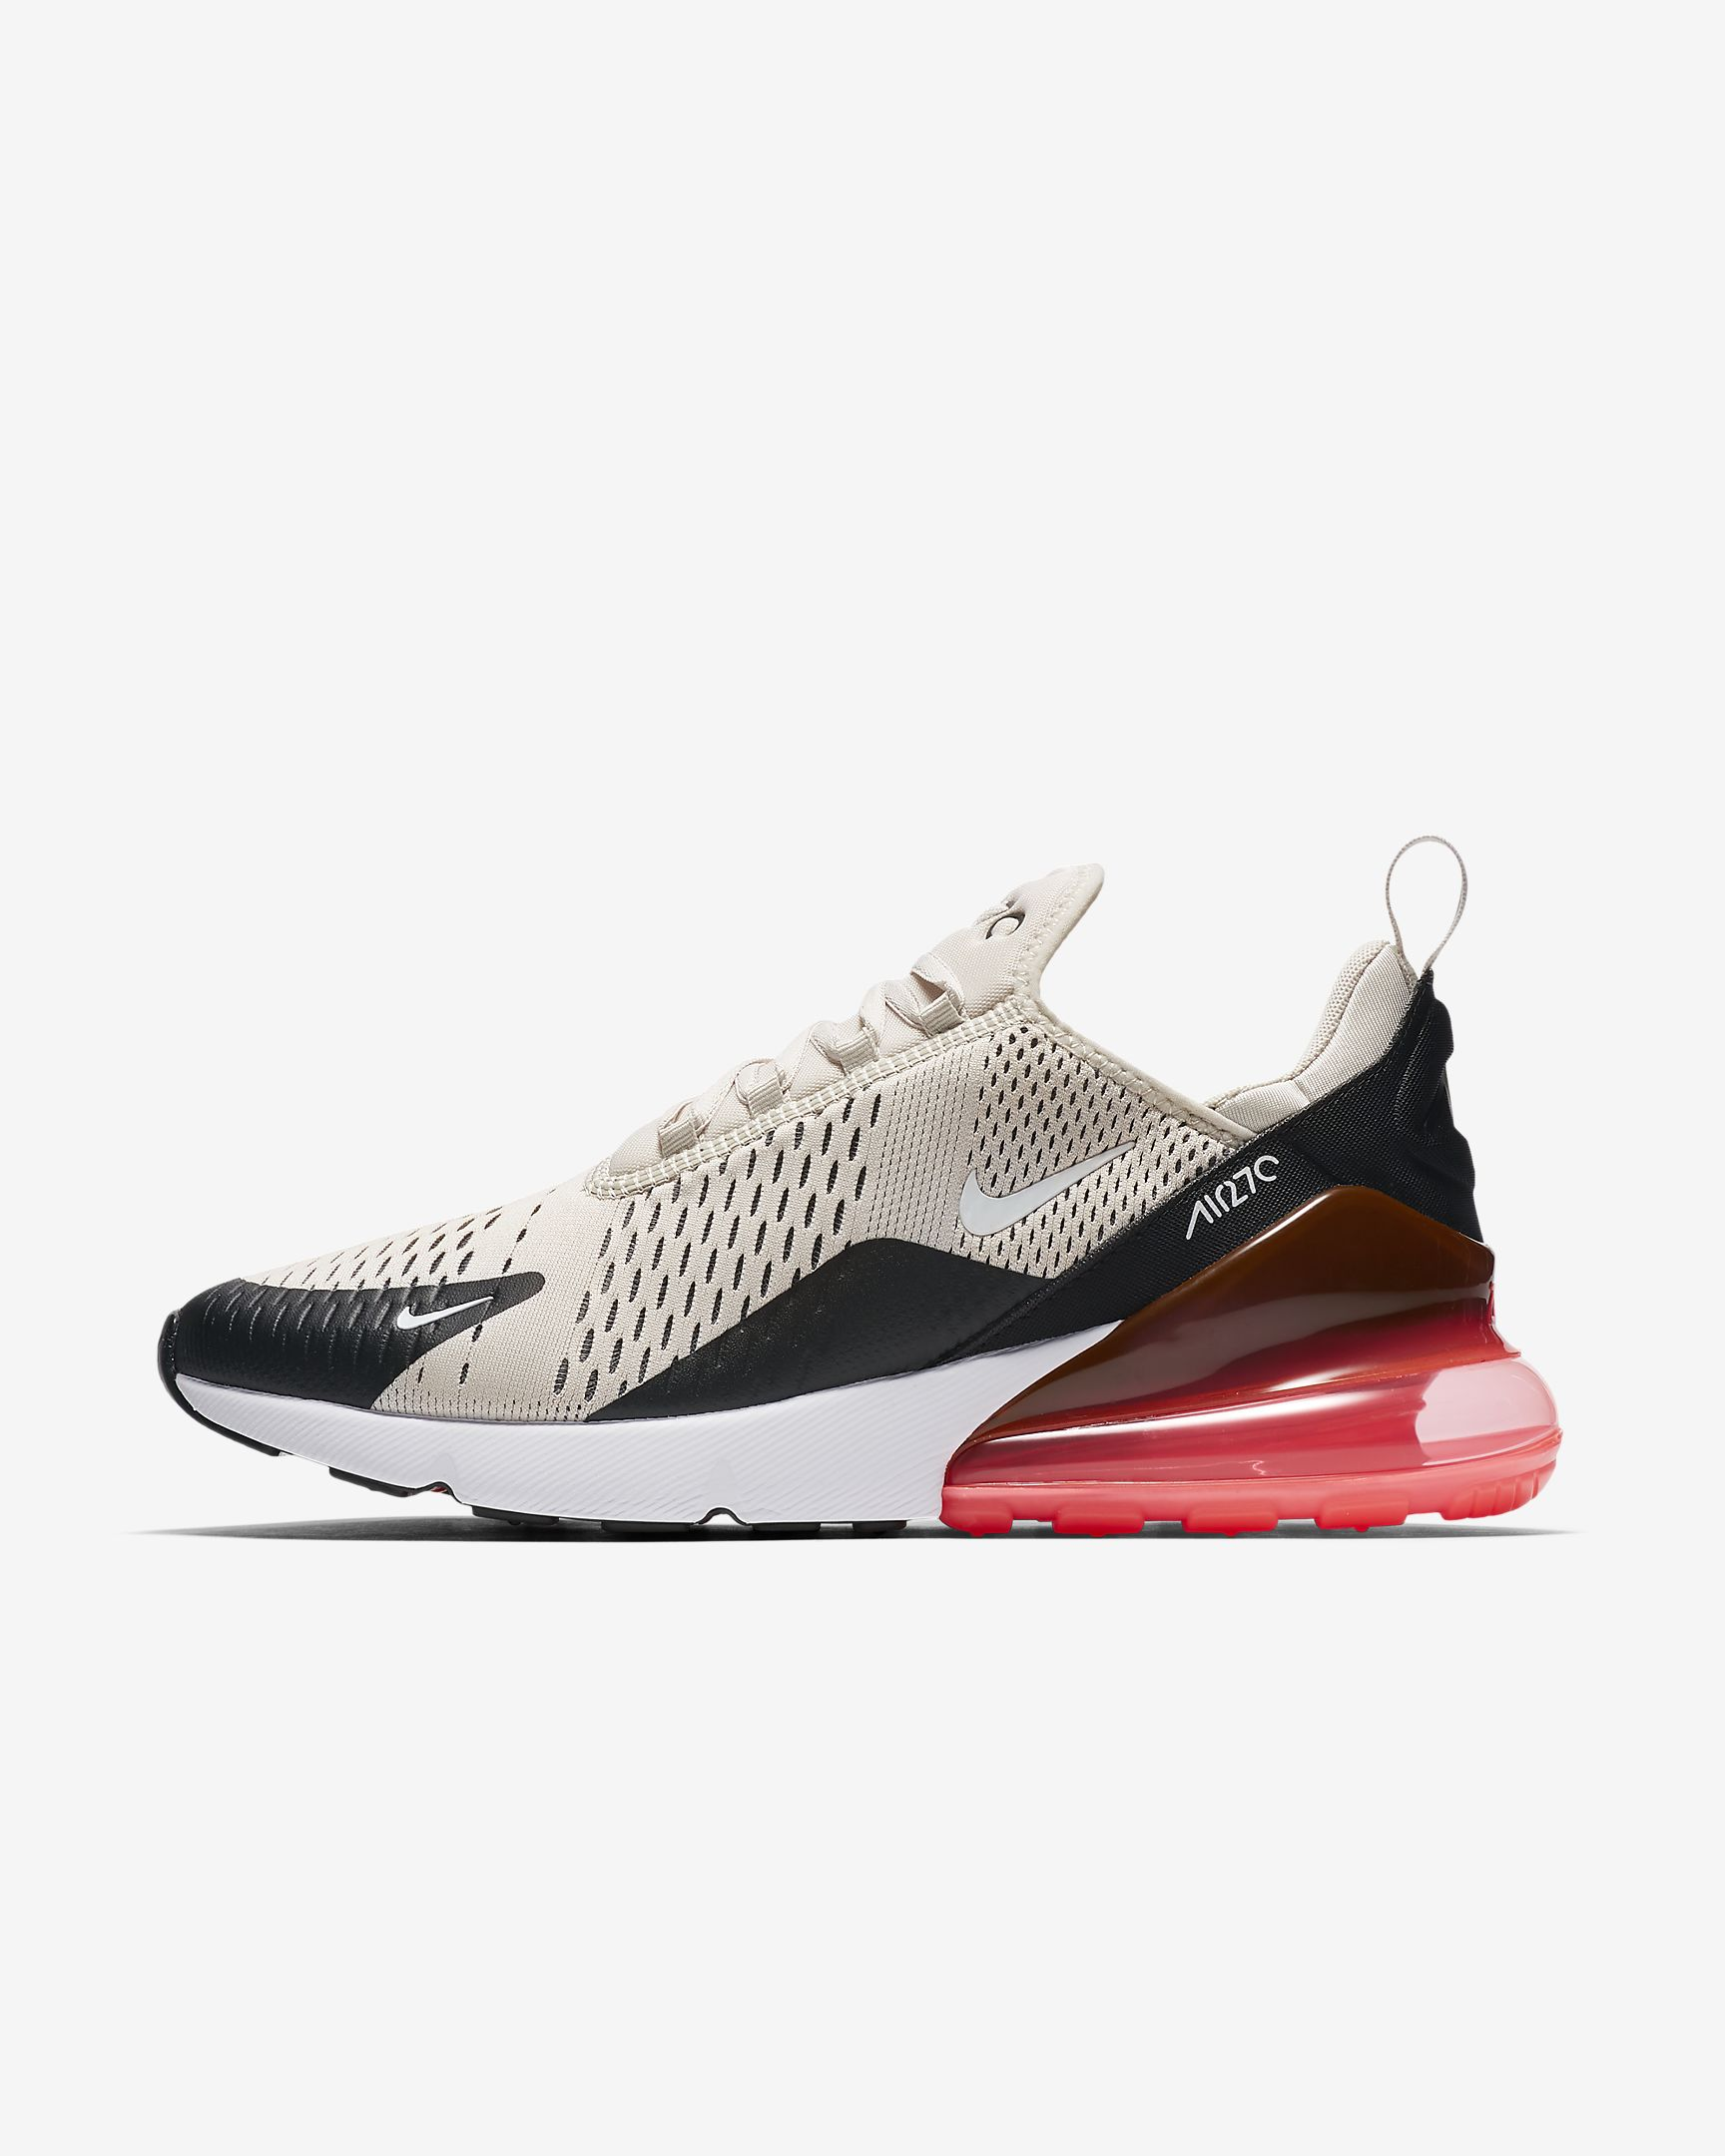 Nike Air Max 270 Men's Shoe $150